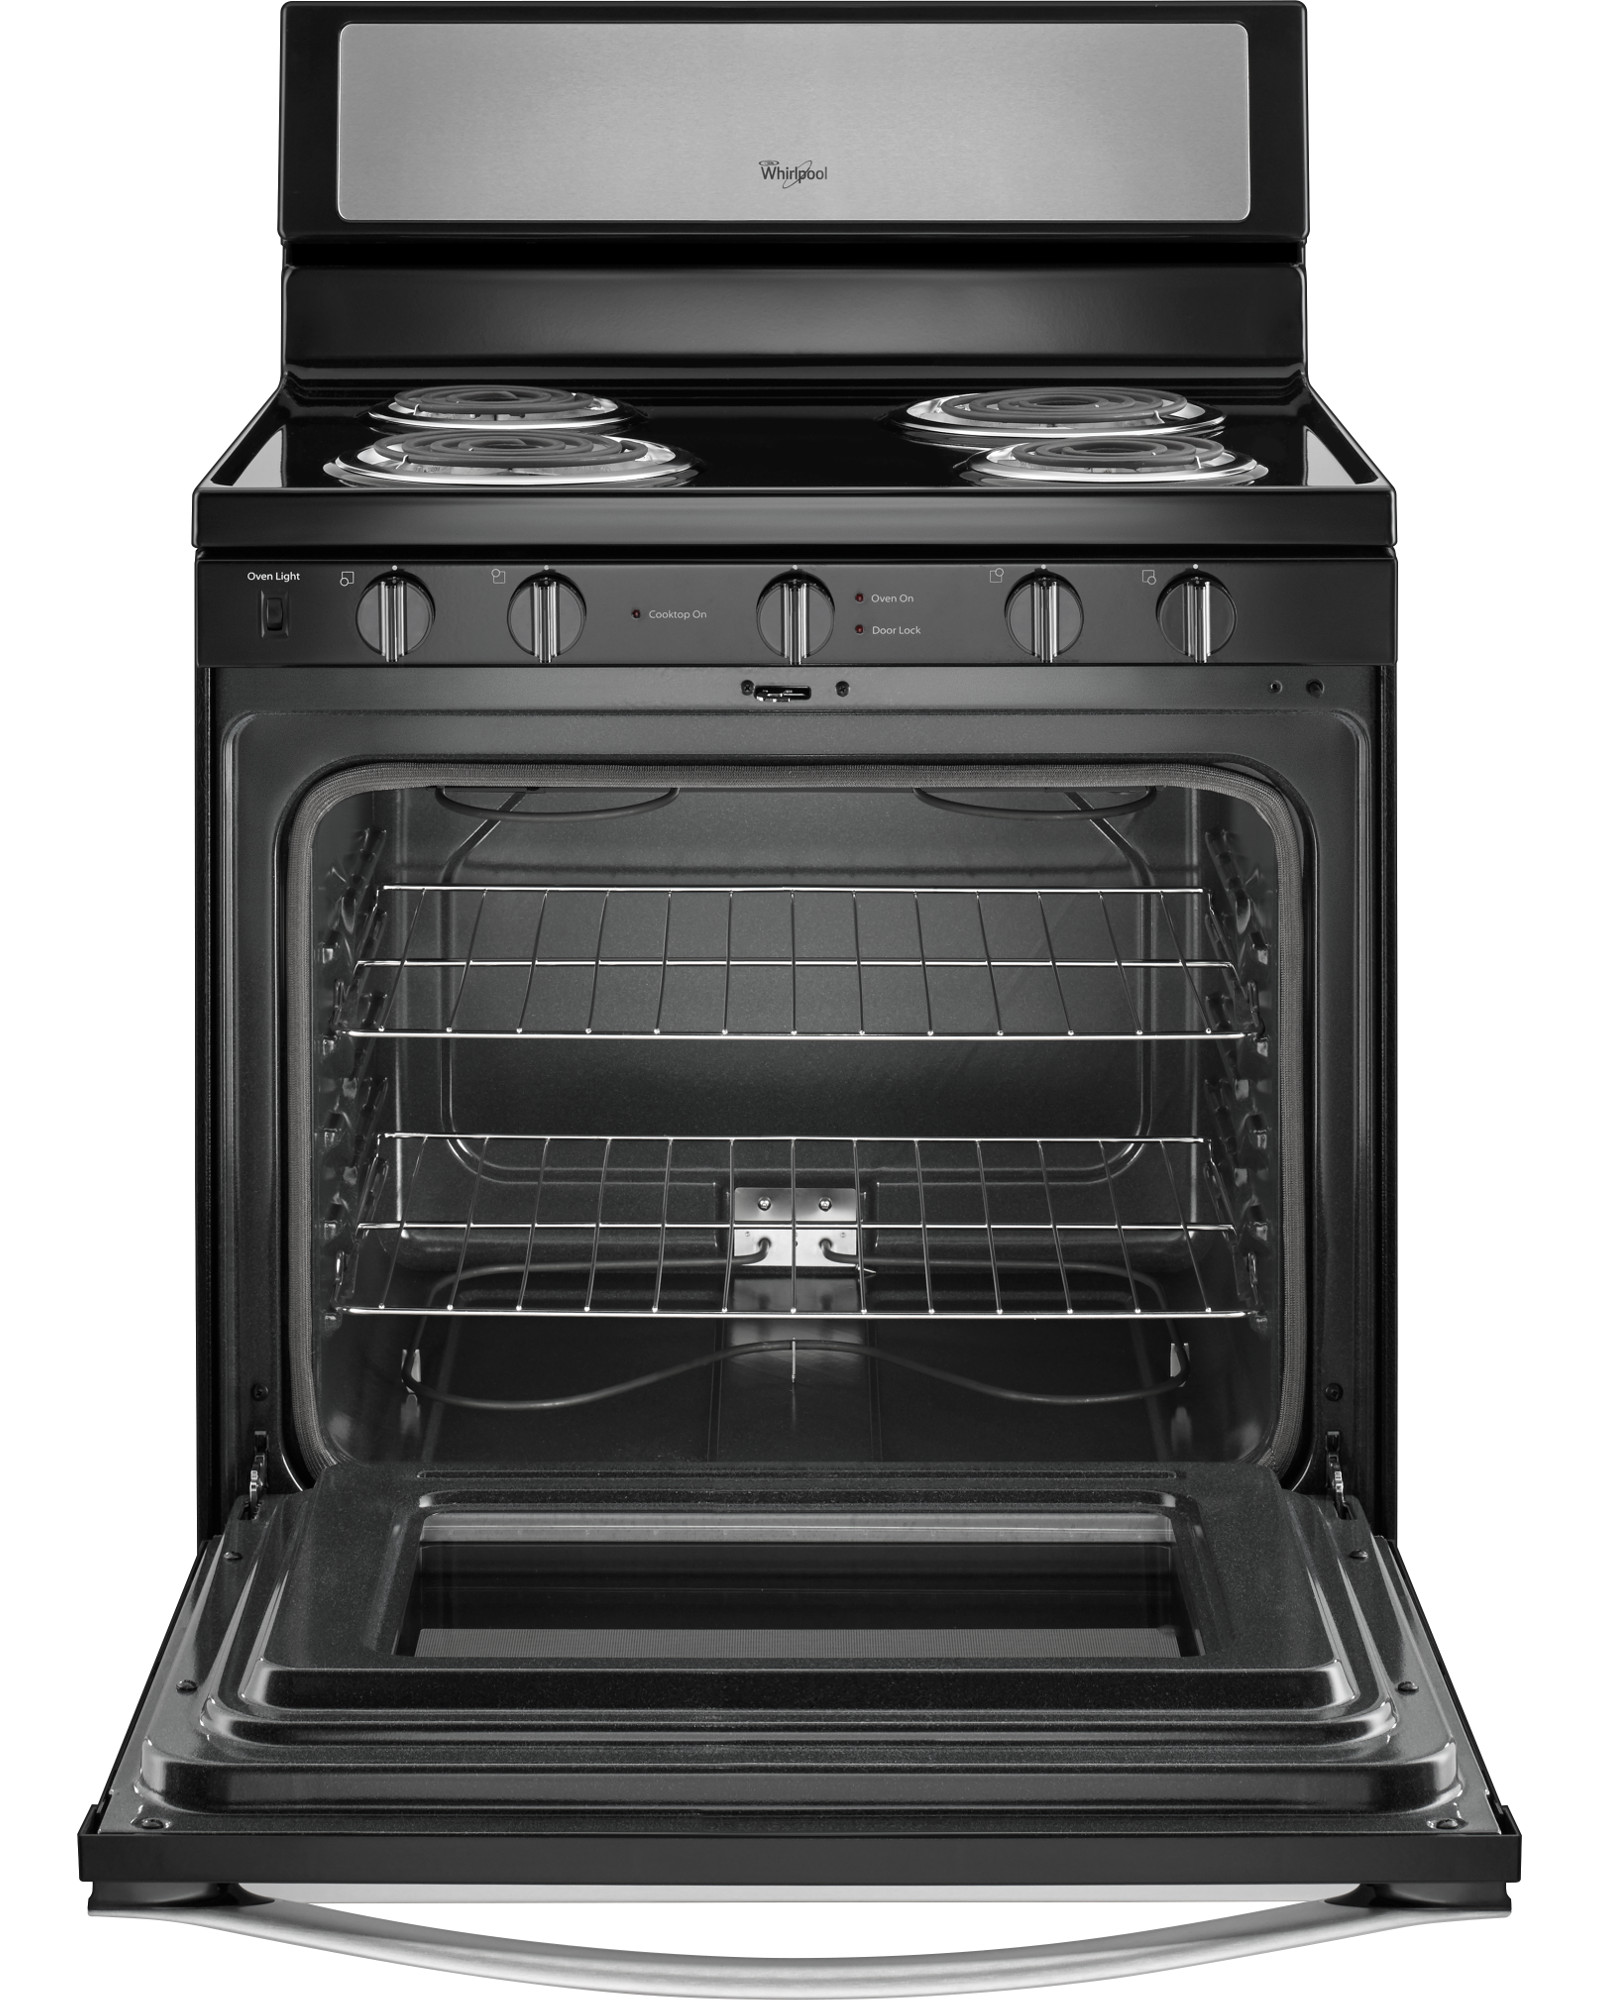 Whirlpool WFC340S0ES 4.8 cu. ft. Electric Range - Stainless Steel